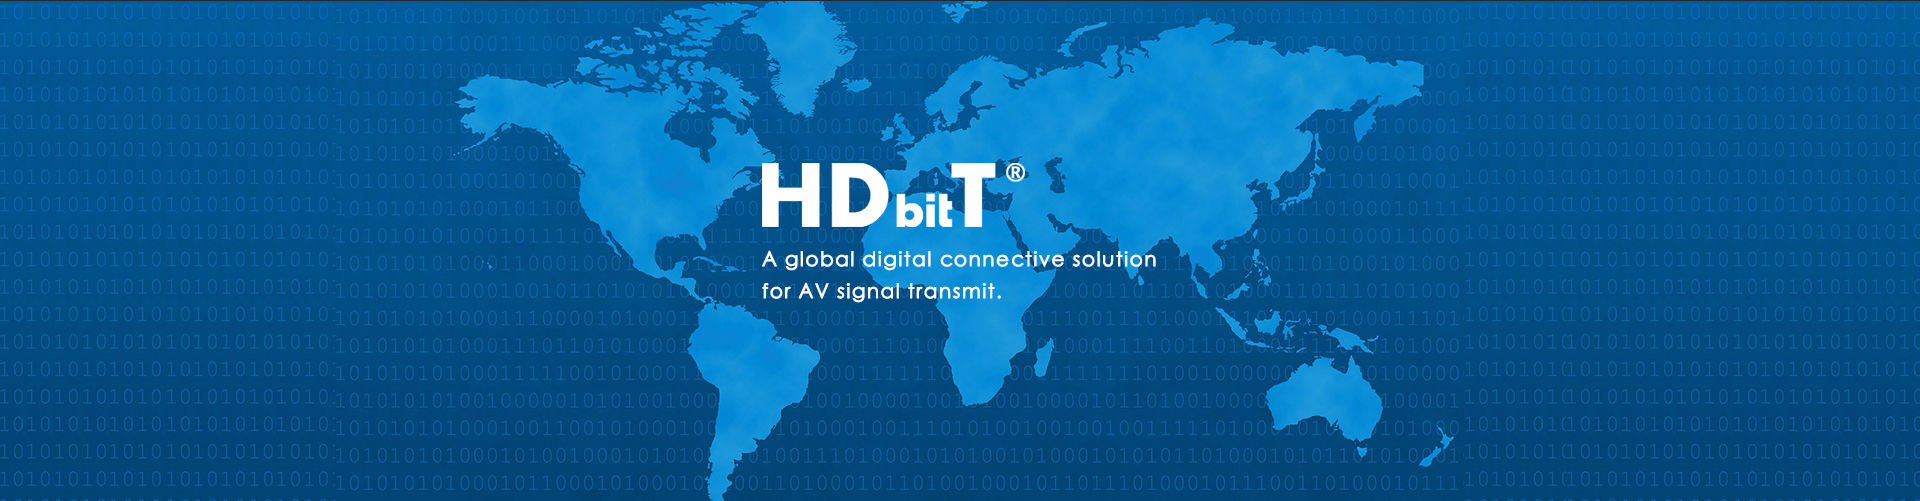 HDbitT is a global digital connective protocol